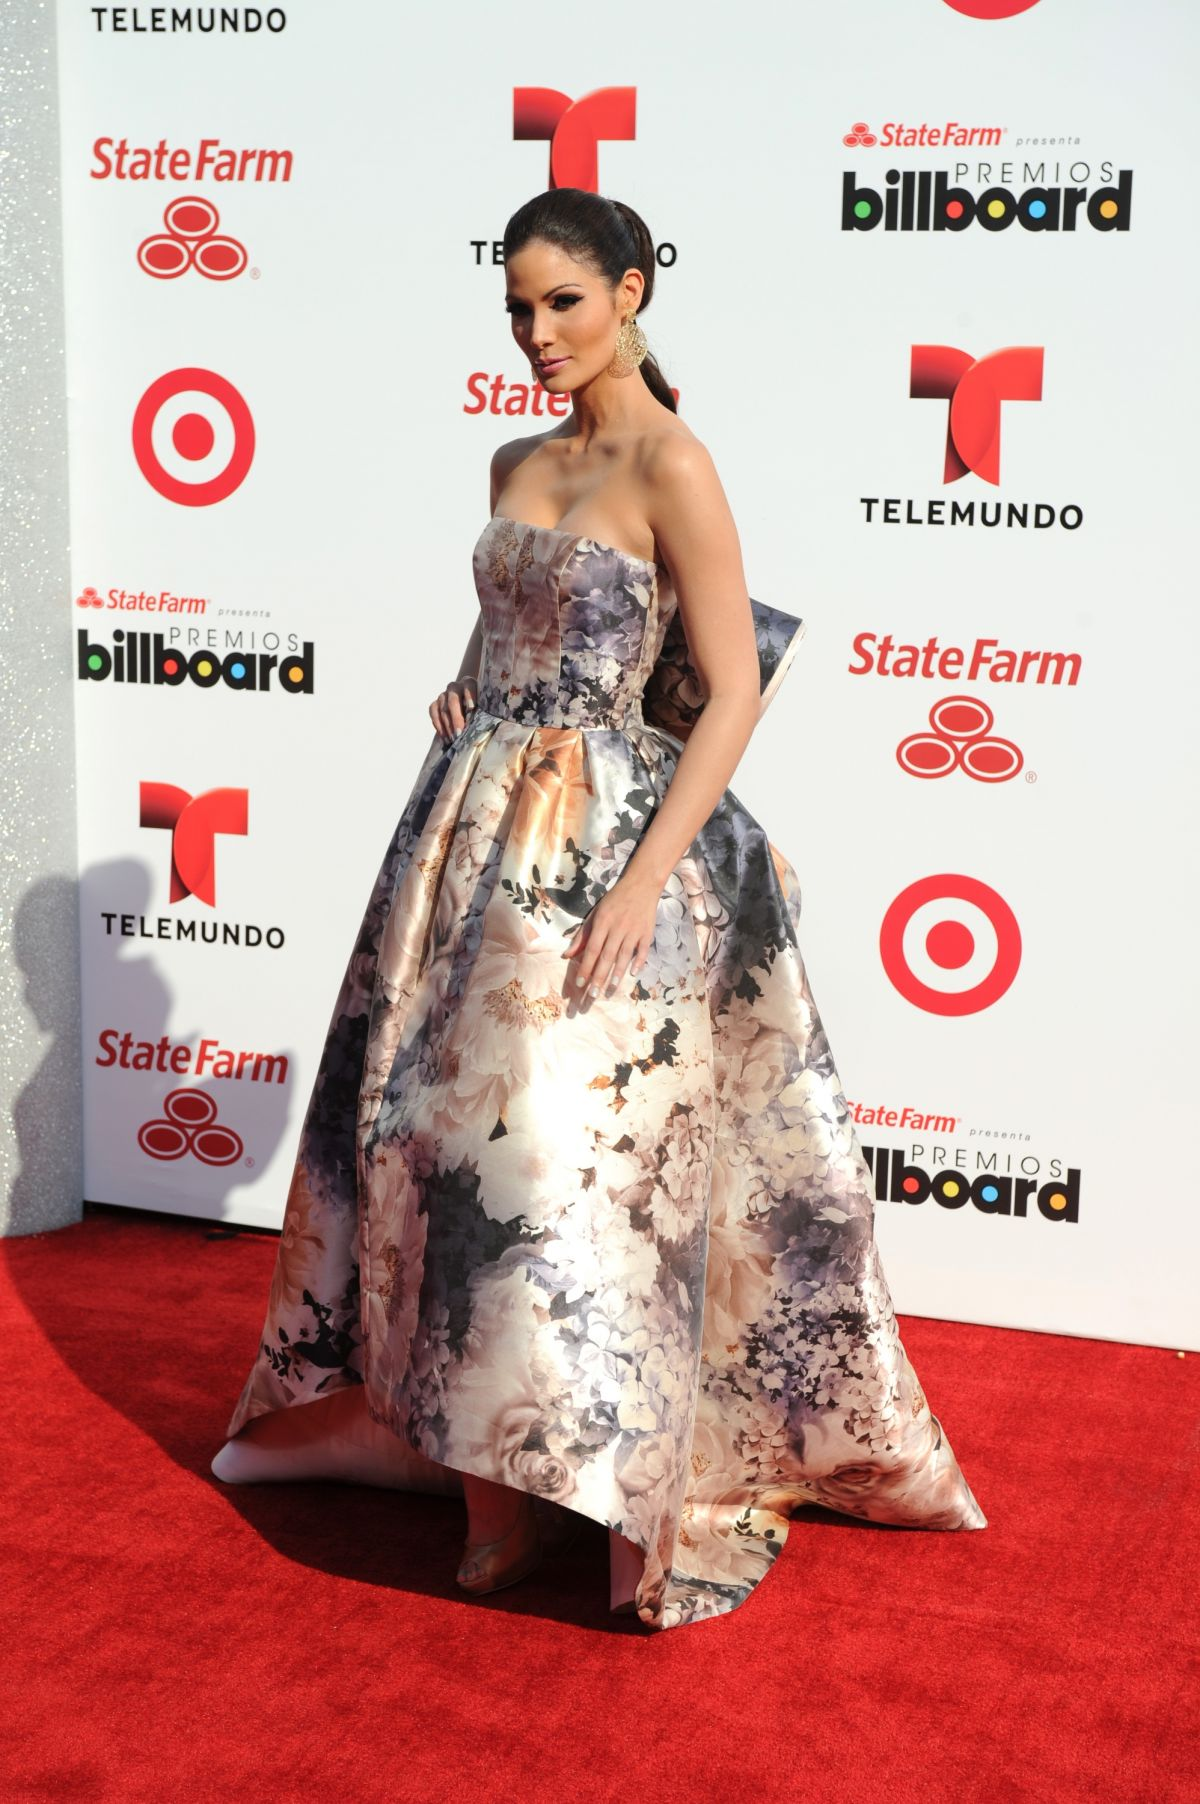 CYNTHIA OLAVARRIA at 2014 Billboard Latin Music Awards in Miami